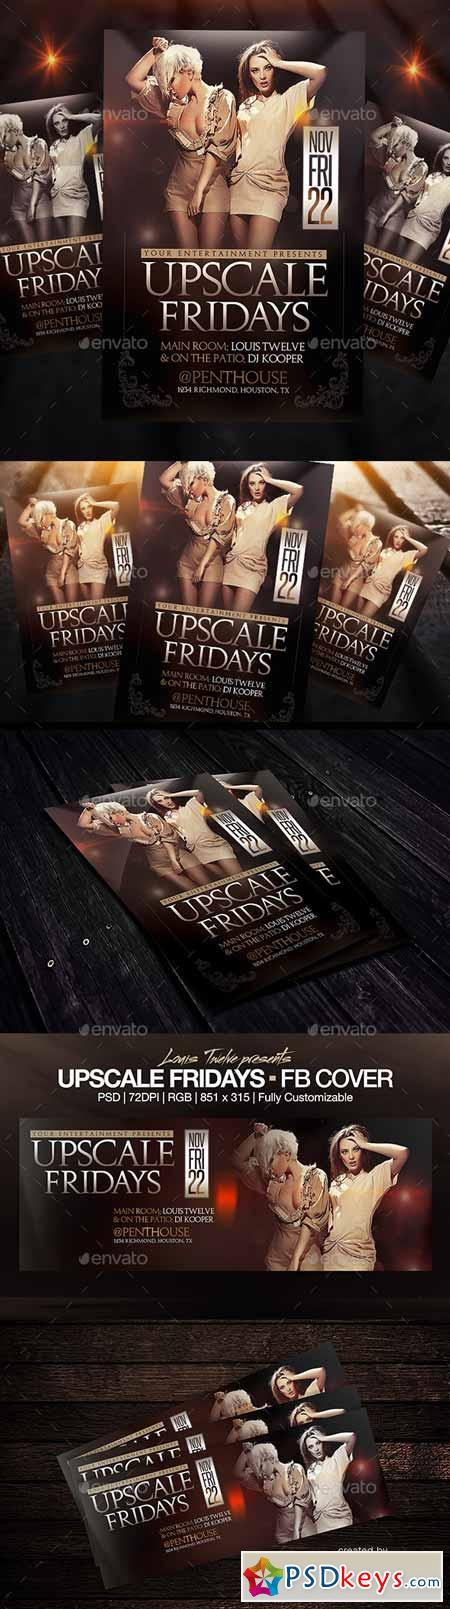 Upscale Fridays Flyer + FB Cover 9110906